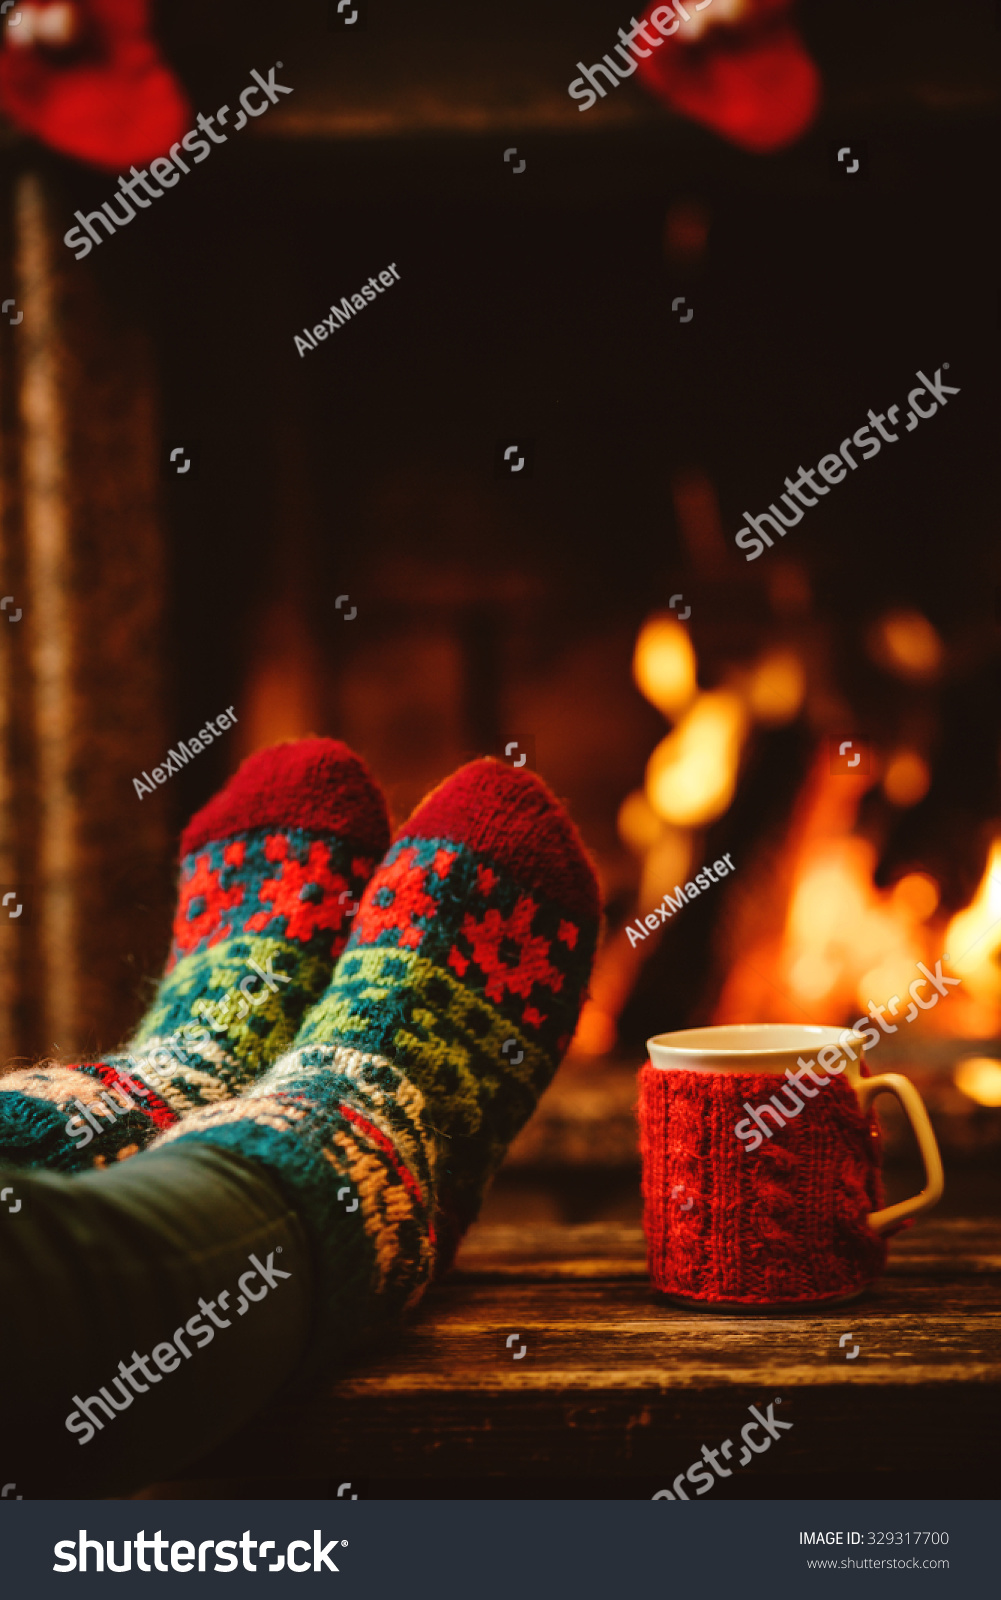 Feet in woollen socks by the Christmas fireplace Woman relaxes by warm fire with a cup of hot drink and warming up her feet in woollen socks Close up on feet Winter and Christmas holidays concept